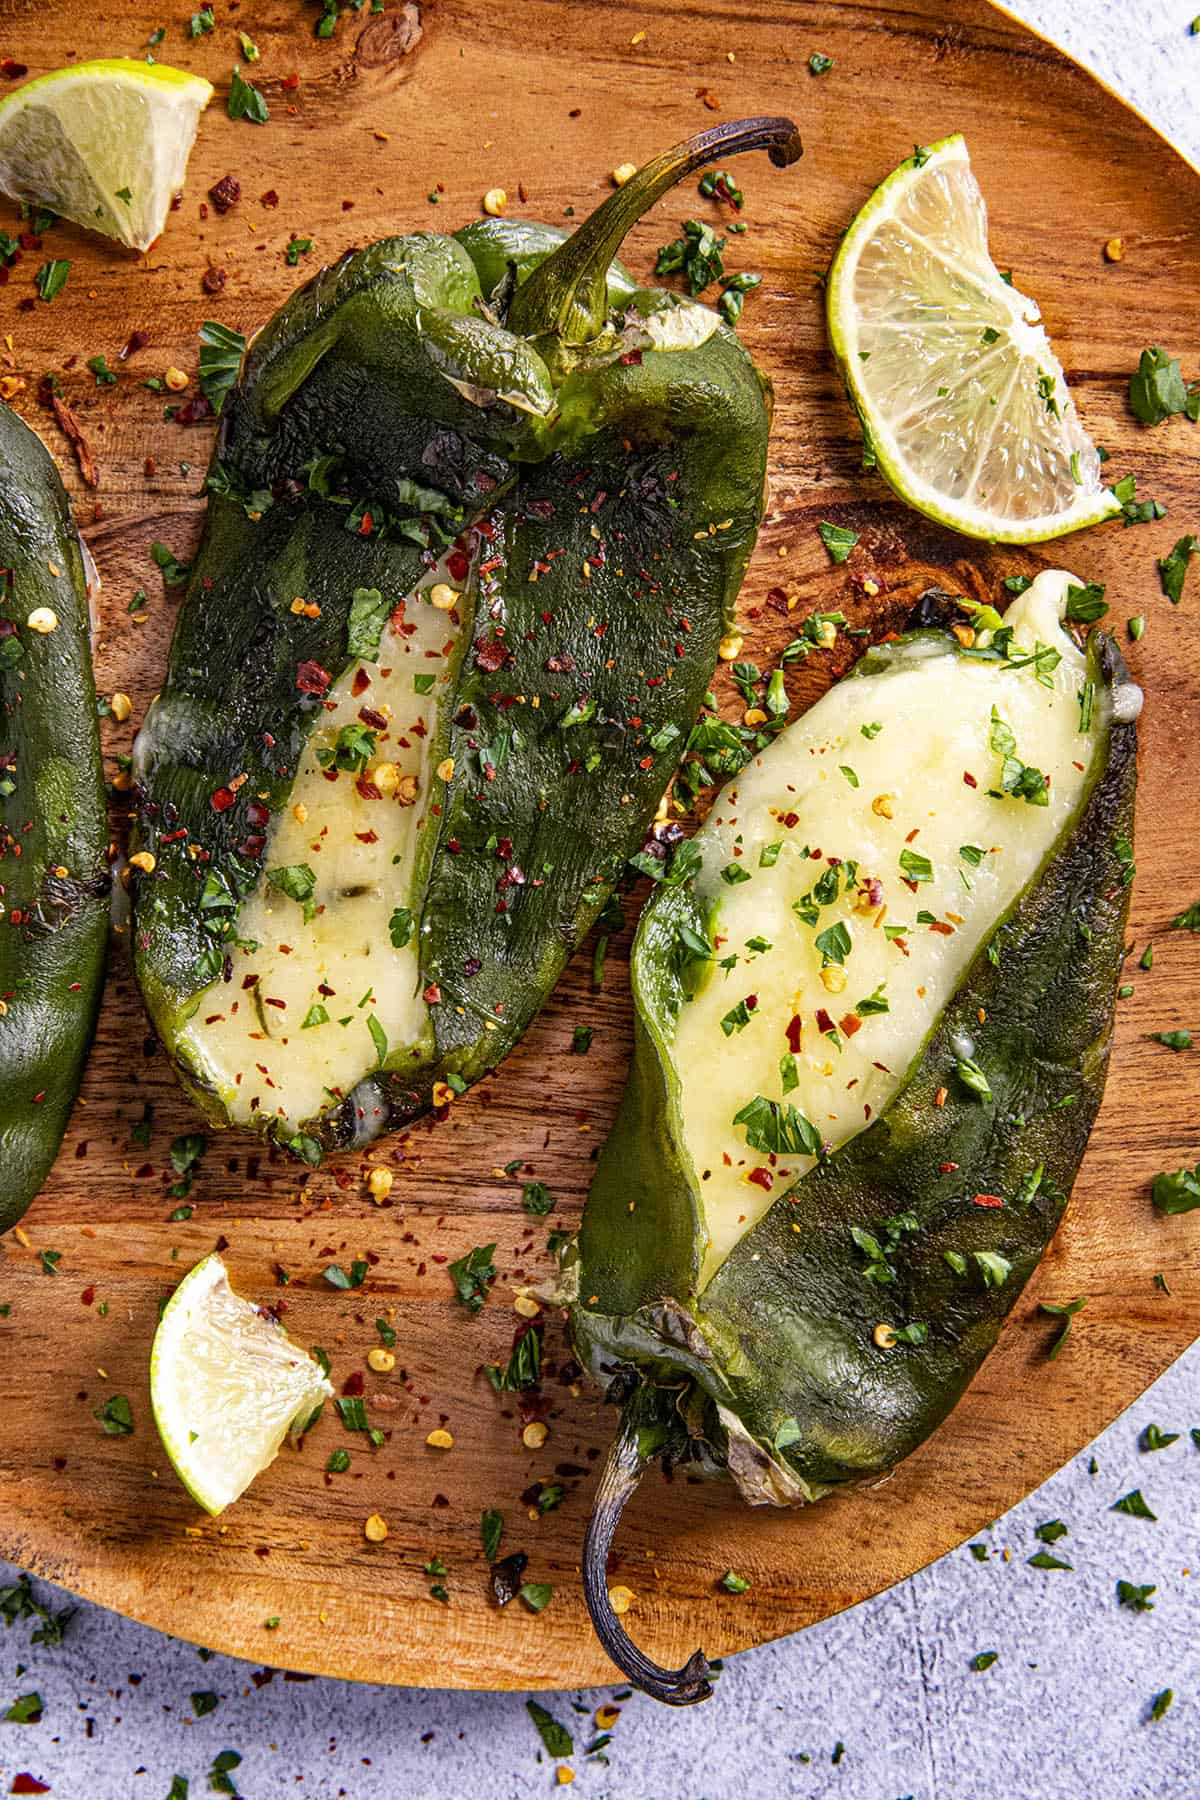 Poblano peppers stuffed with cheese on a plate